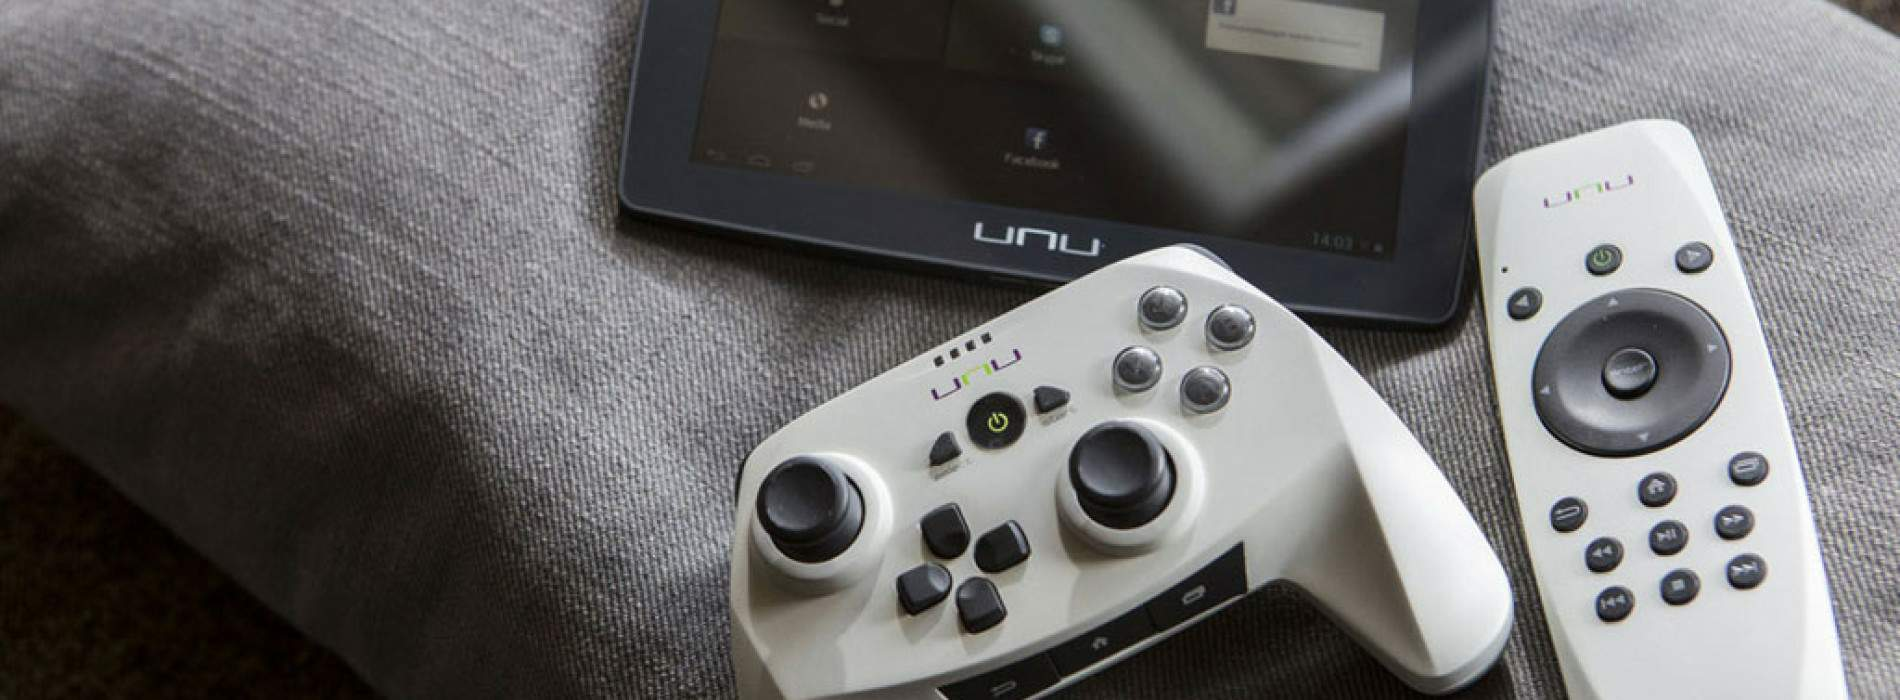 Unu: Tableta, videoconsola y Smart TV, todo en uno